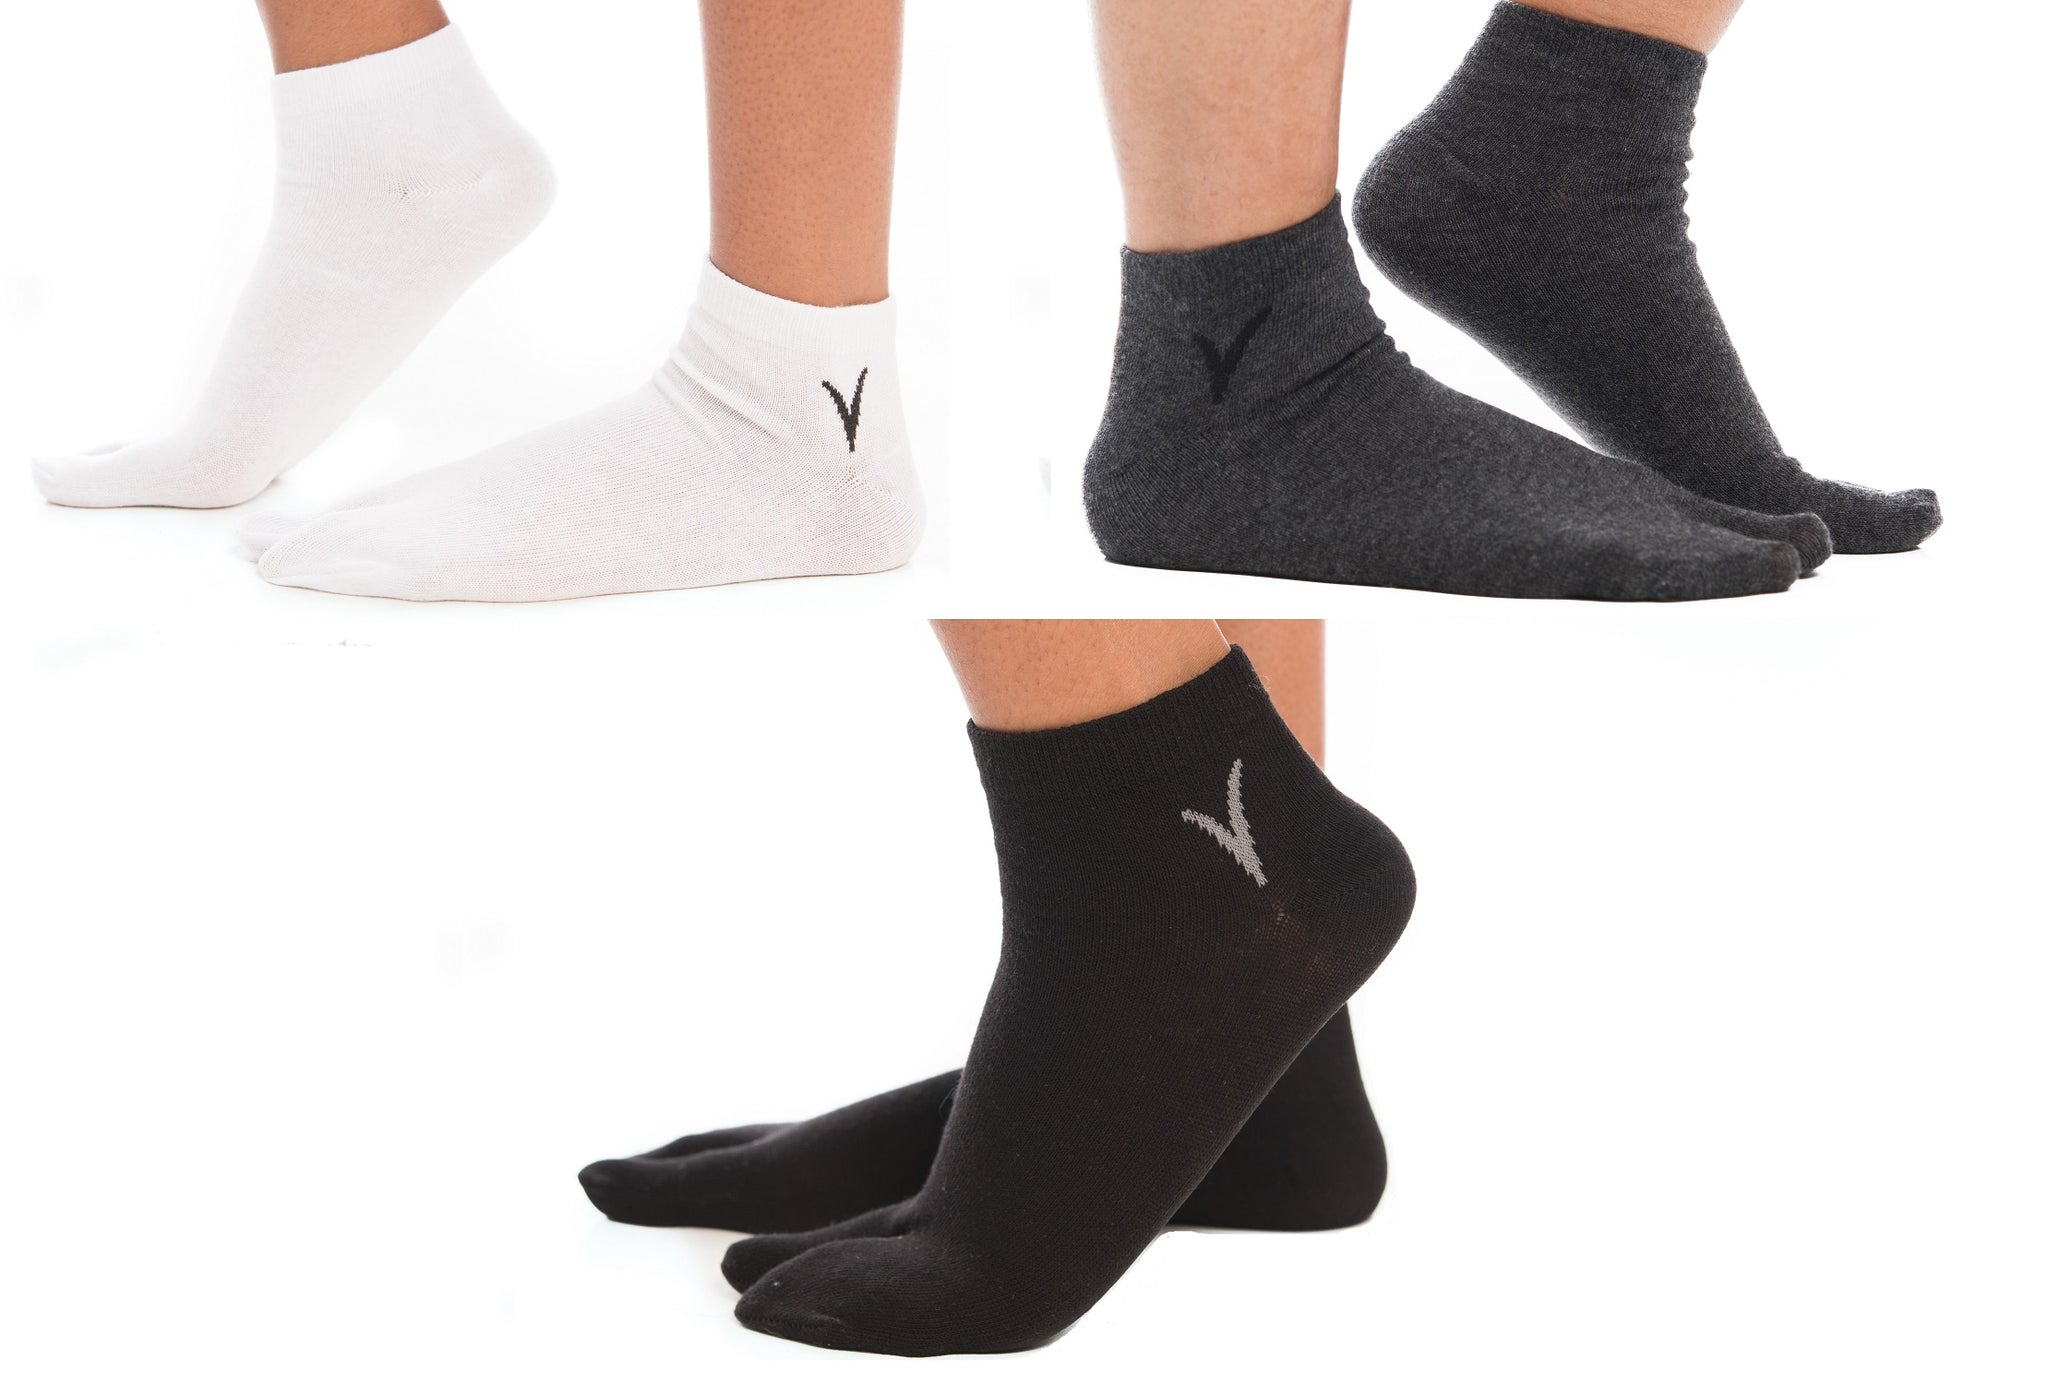 3 Pairs - V-Toe Flip Flop Tabi Big Toe Socks - White, Gunmetal Grey, Black Ankle